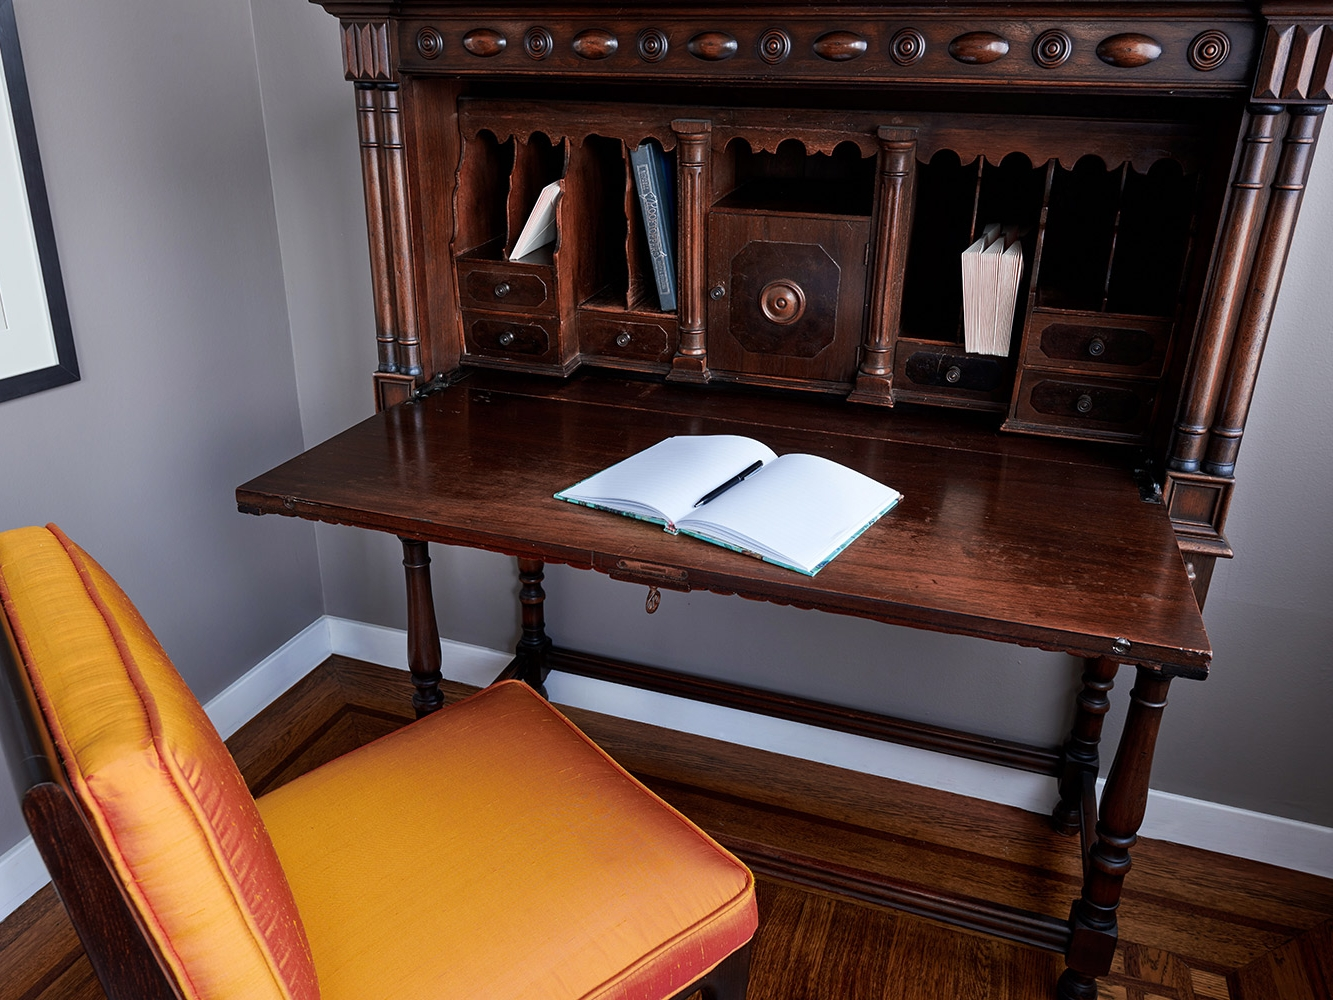 dark mahogany furniture. Revitaliste Refinished The Antique Secretary Desk In A Dark Mahogany Wood  Stain, Replaced Carved Furniture